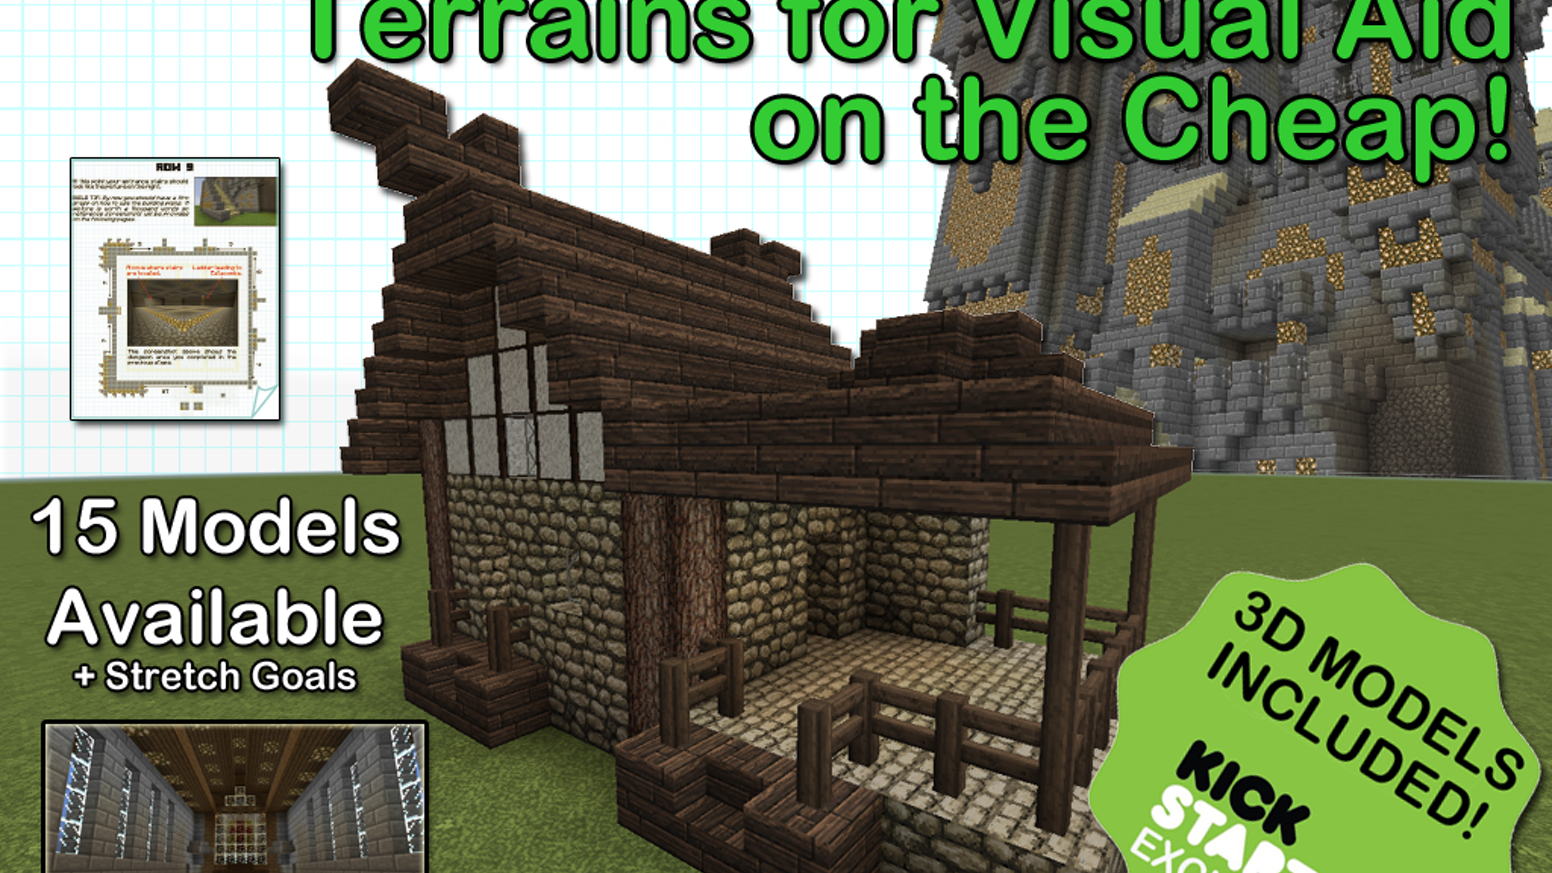 Help me cover typesetting fees to create step by step pdf tutorials to build 3d visual aids for dd or pathfinder using minecraft